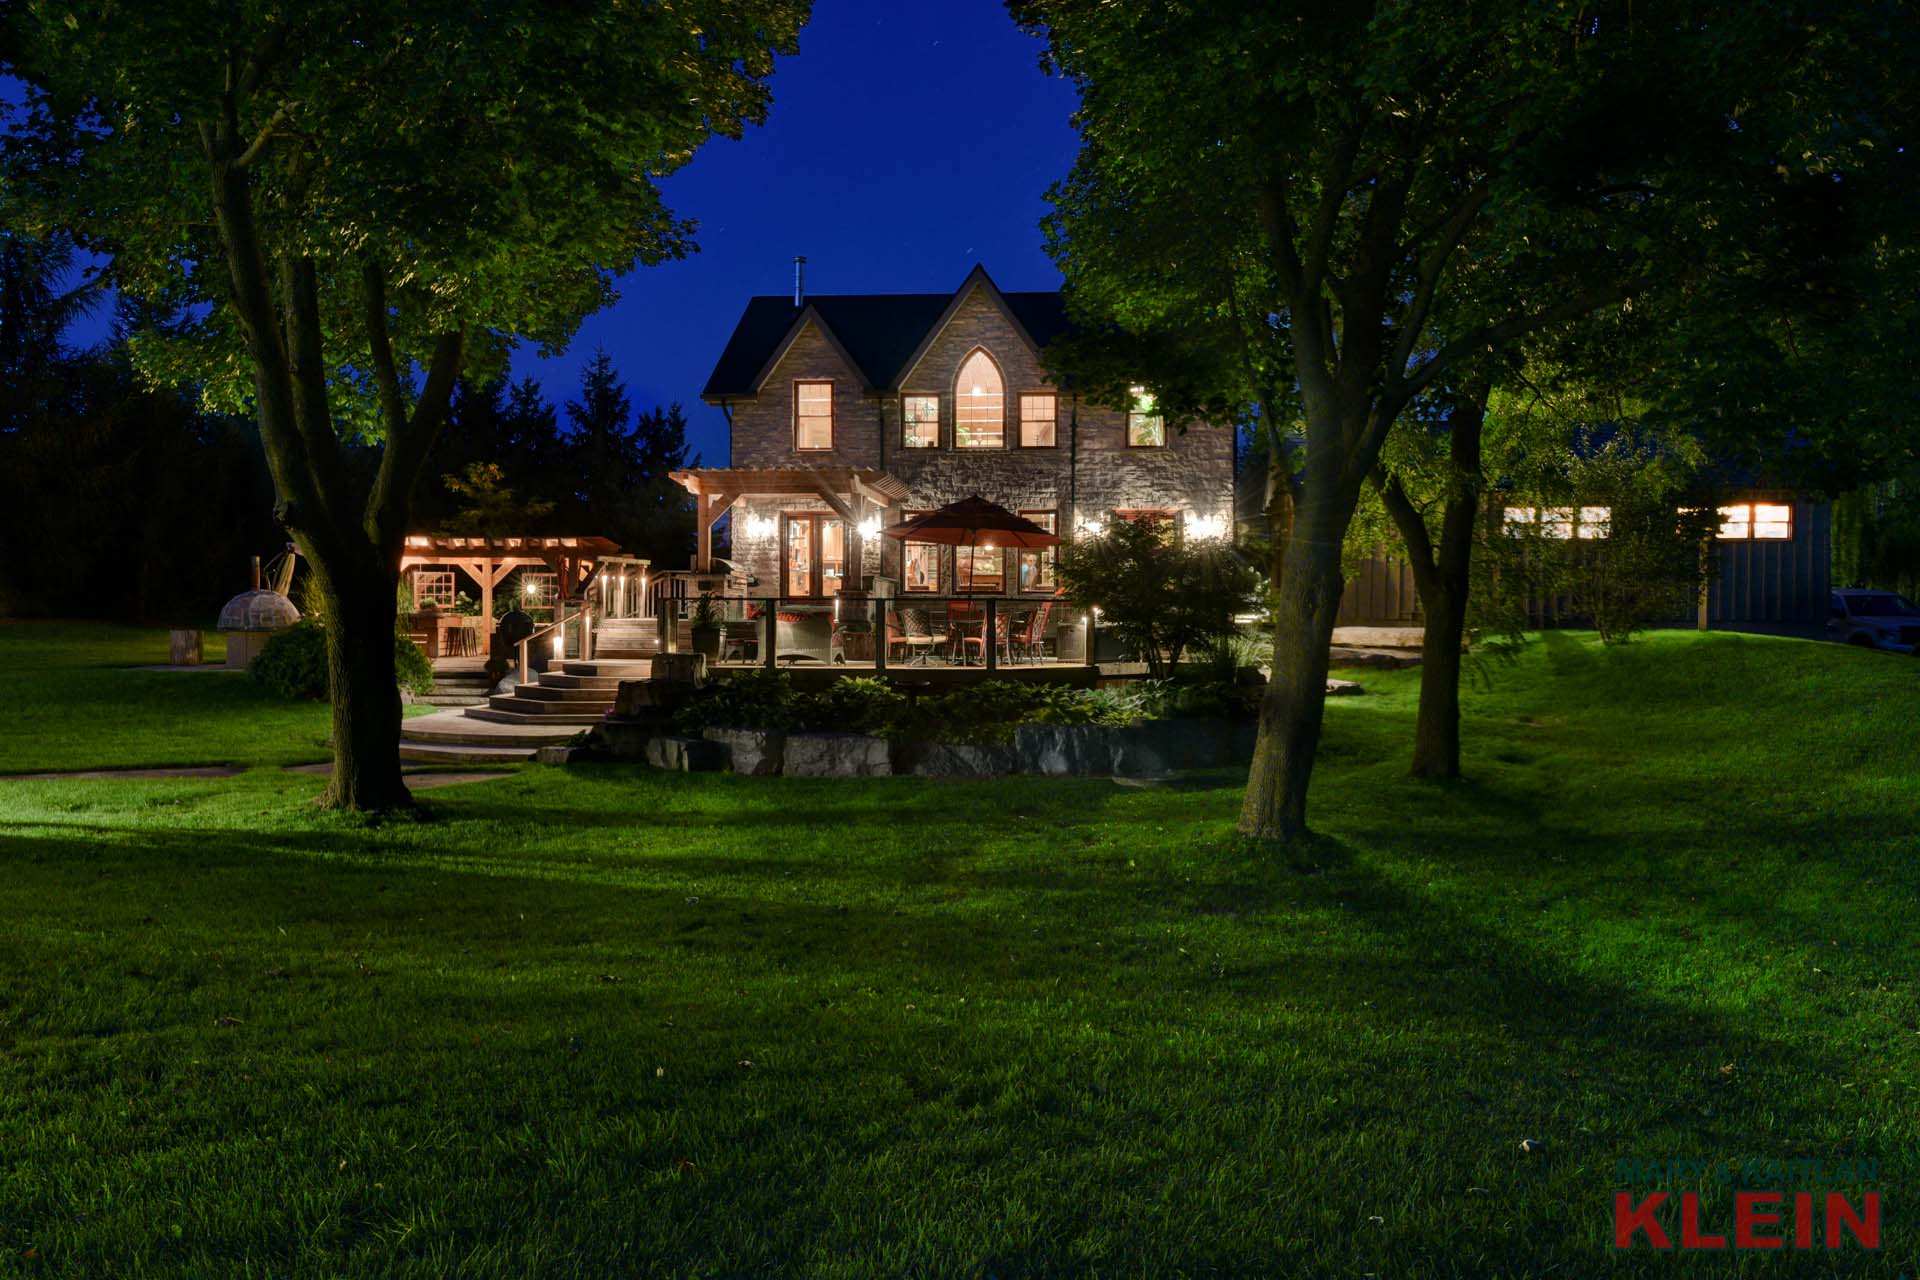 night picture, caledon estate home, acreage for sale, caledon escarpment